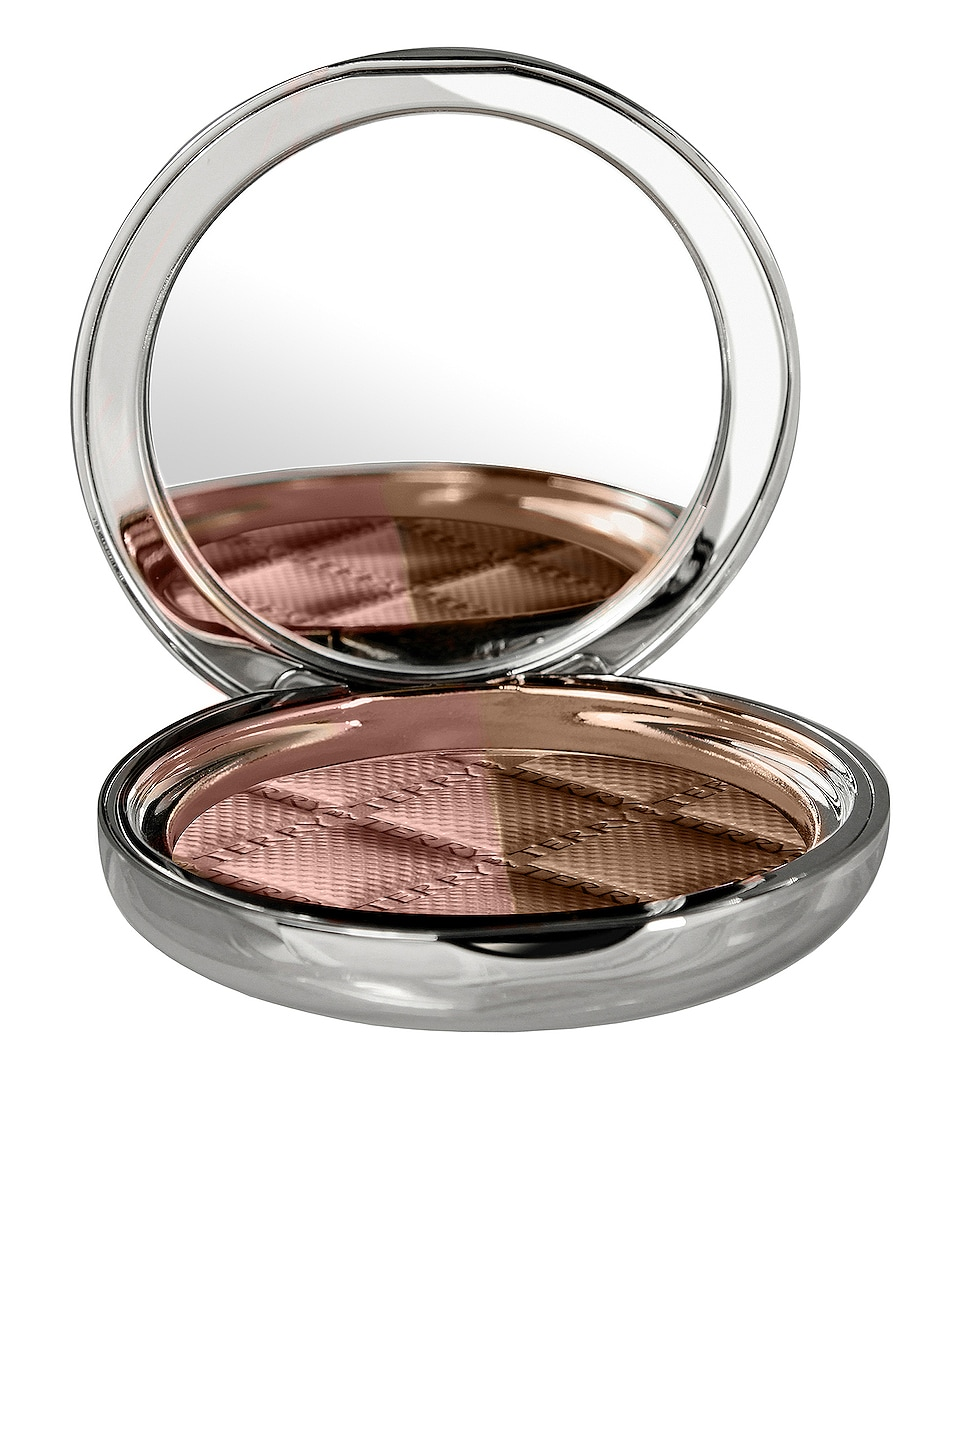 By Terry Terrybly Densiliss Compact Contouring in Fresh Contrast